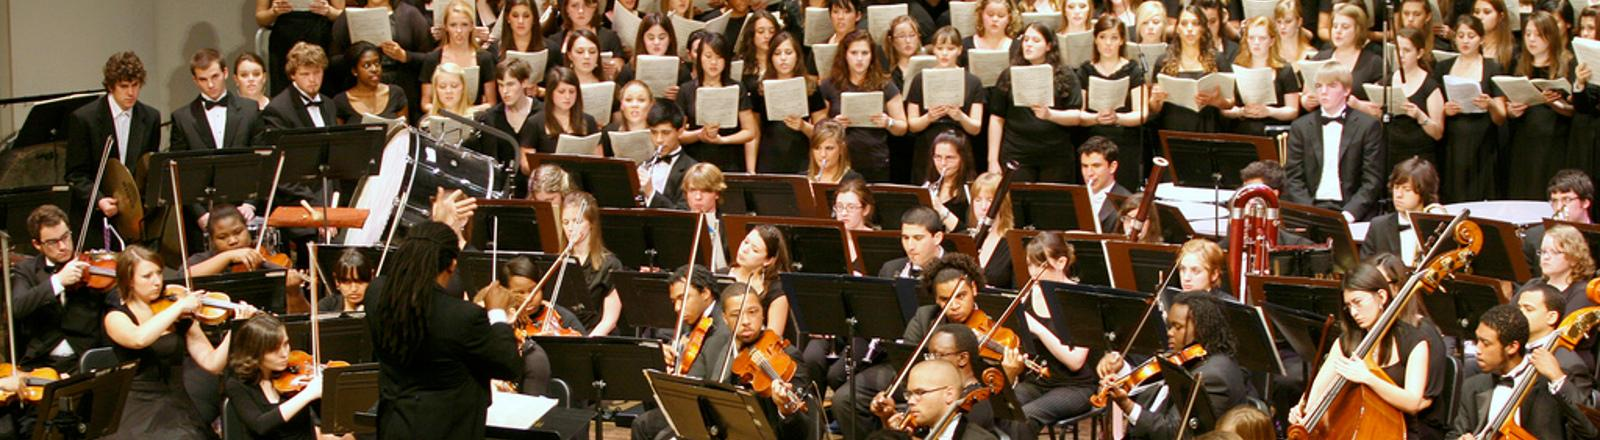 Dr. Jean Montes directs the Loyola Symphony Orchestra in Roussel Hall.